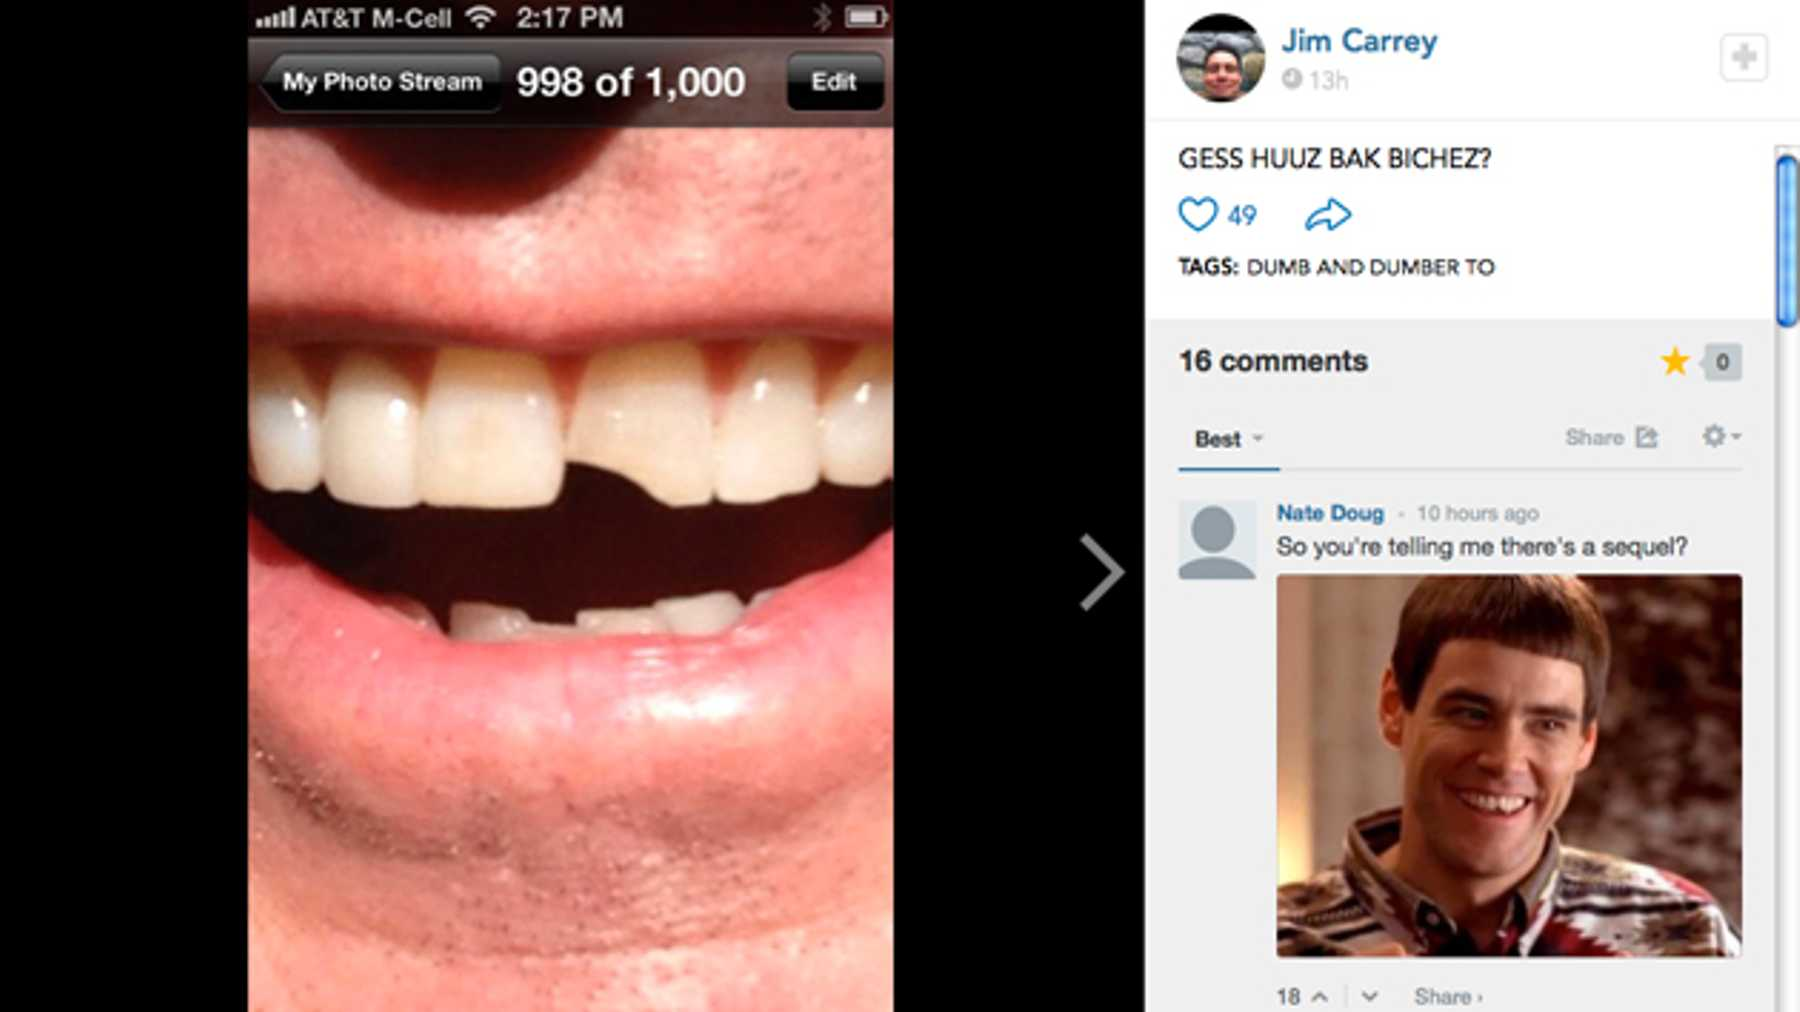 Jim Carrey Tweets Toothy Pic Of Lloyd Christmas For Dumb And